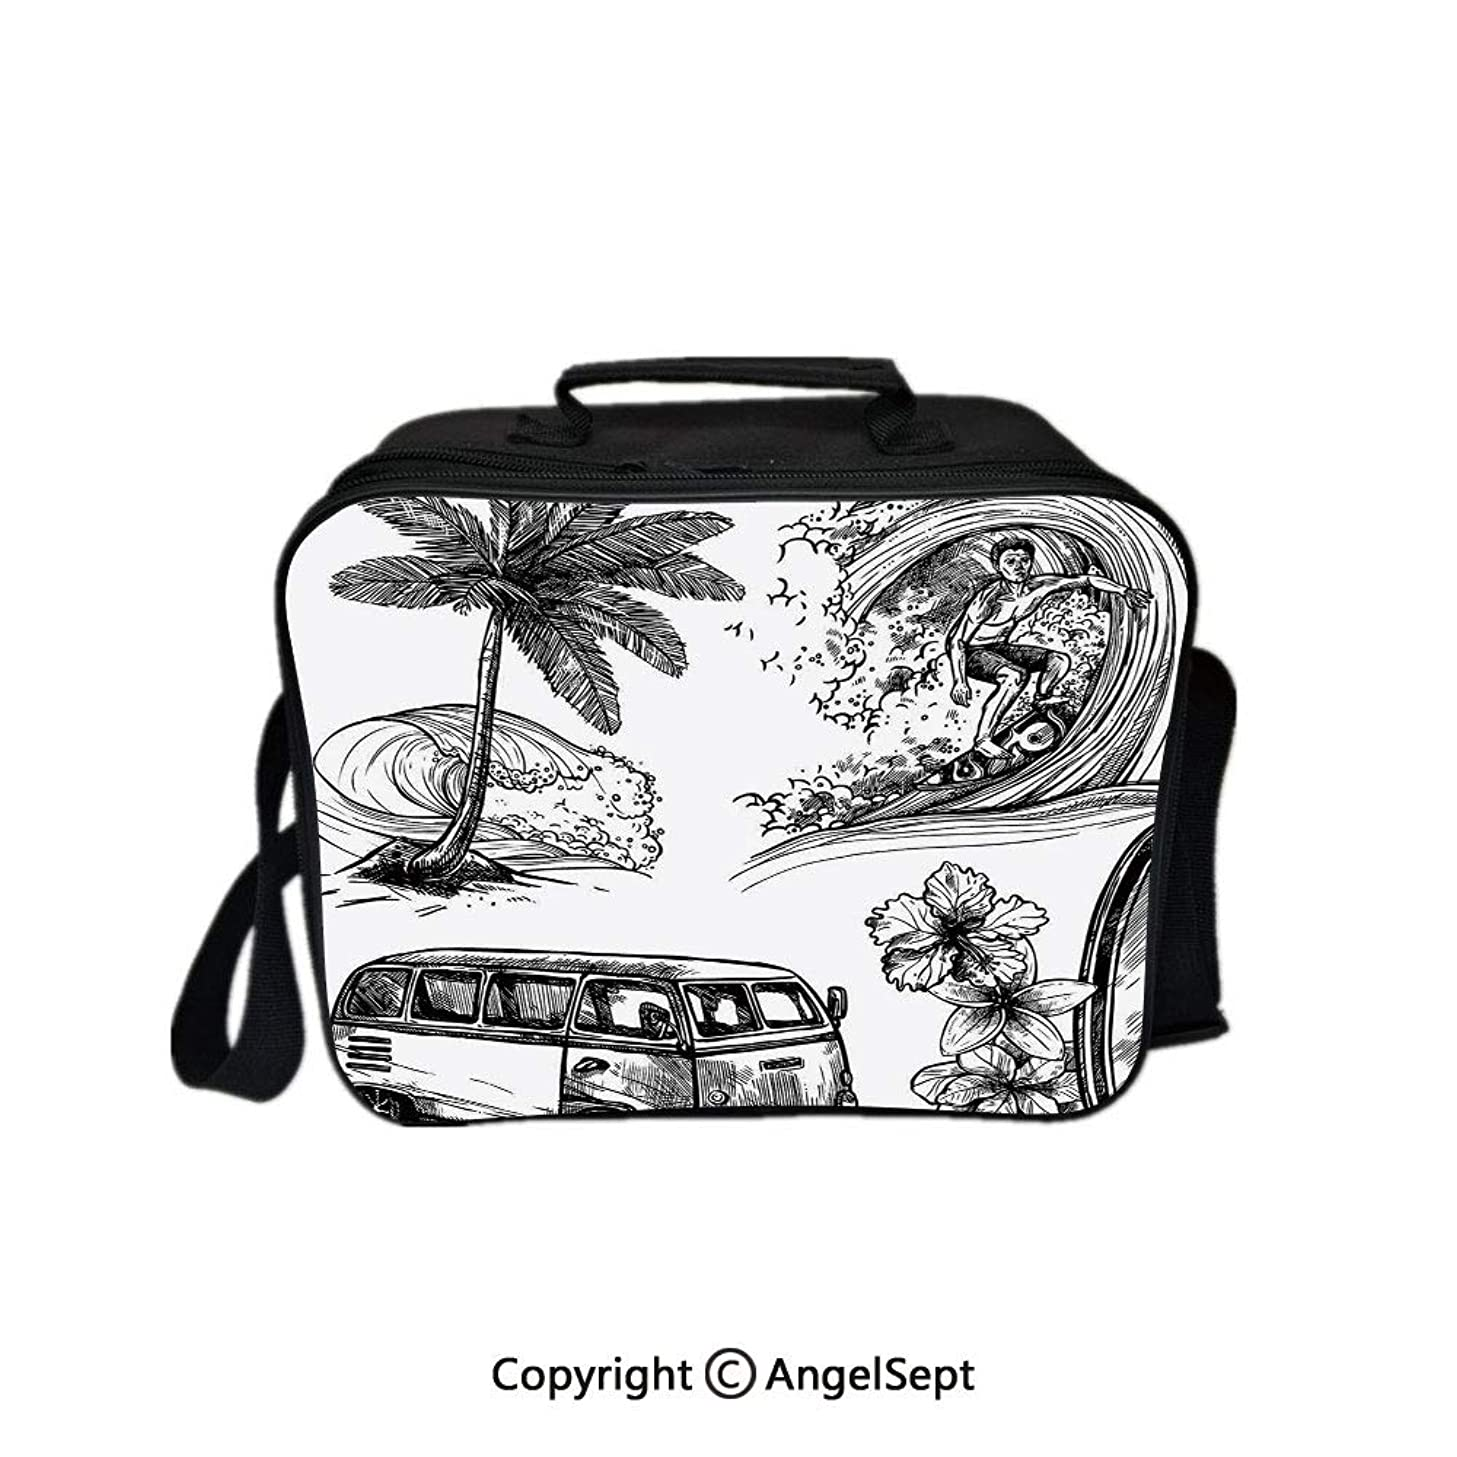 Hot Sale Lunch Container,Surfing Sport Surfboard Beach and Van Sketch Style Decorative Monochromic Illustration Black White 8.3inch,Lunch Bag Large Cooler Tote Bag For Men, Women